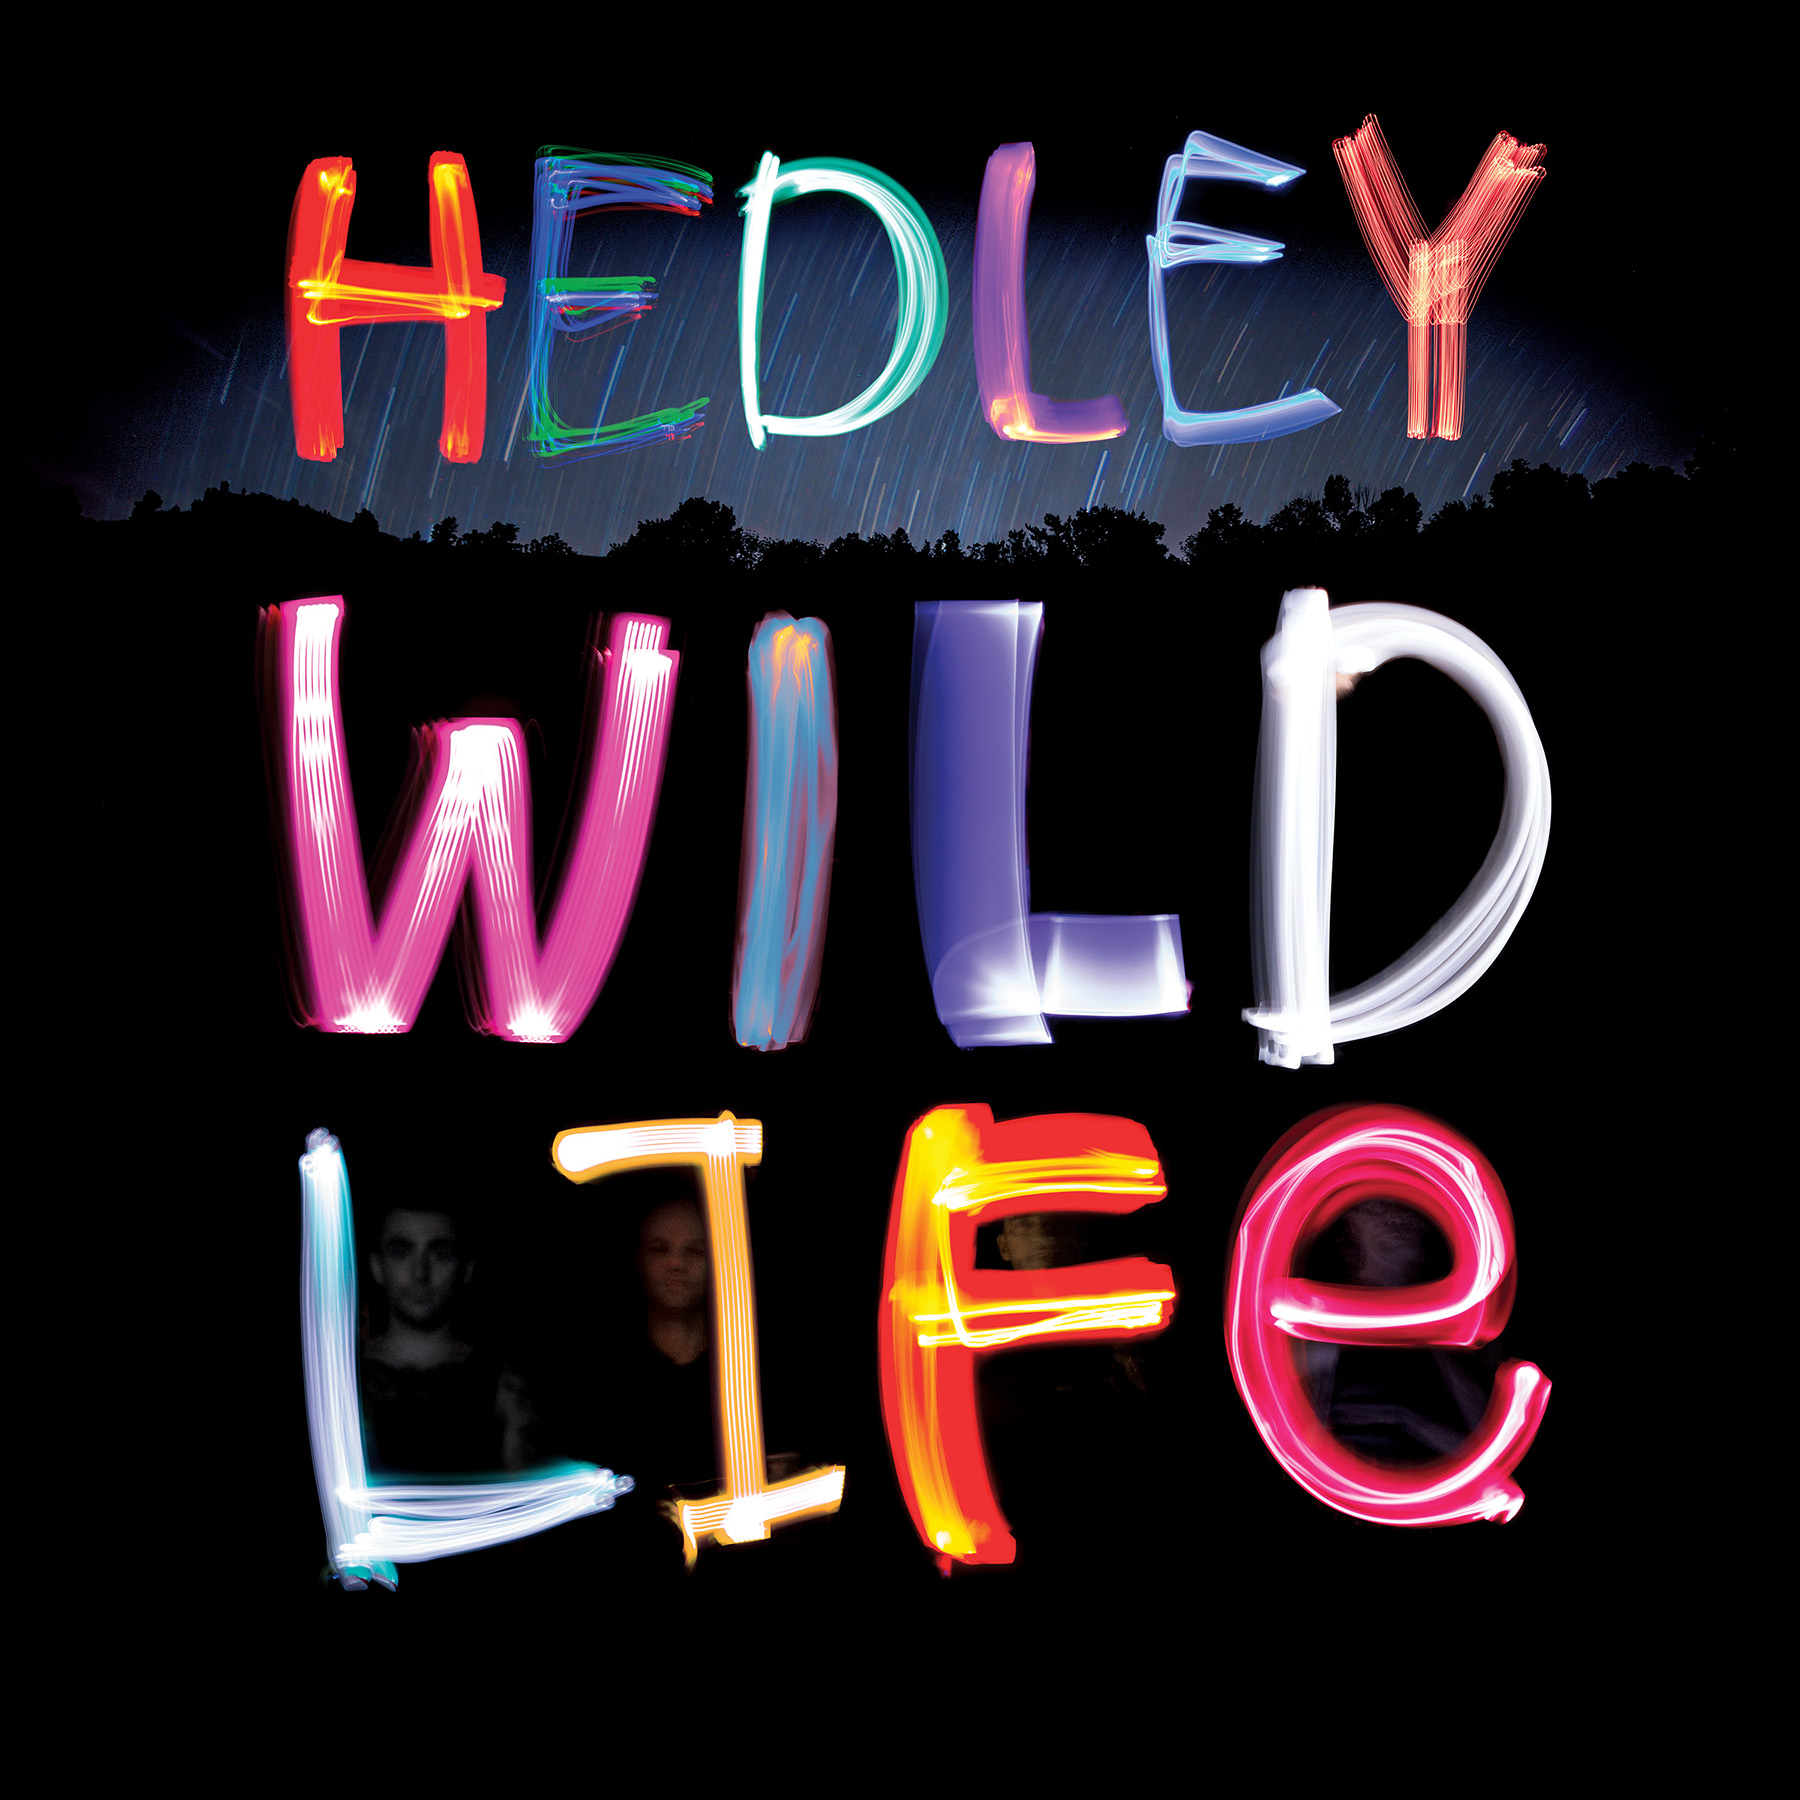 hedley singles The self-titled debut album from vancouver rockers hedley,  chris lord-alge mixed us singles track listings disc: 1 1 villain 2 on my own 3 .